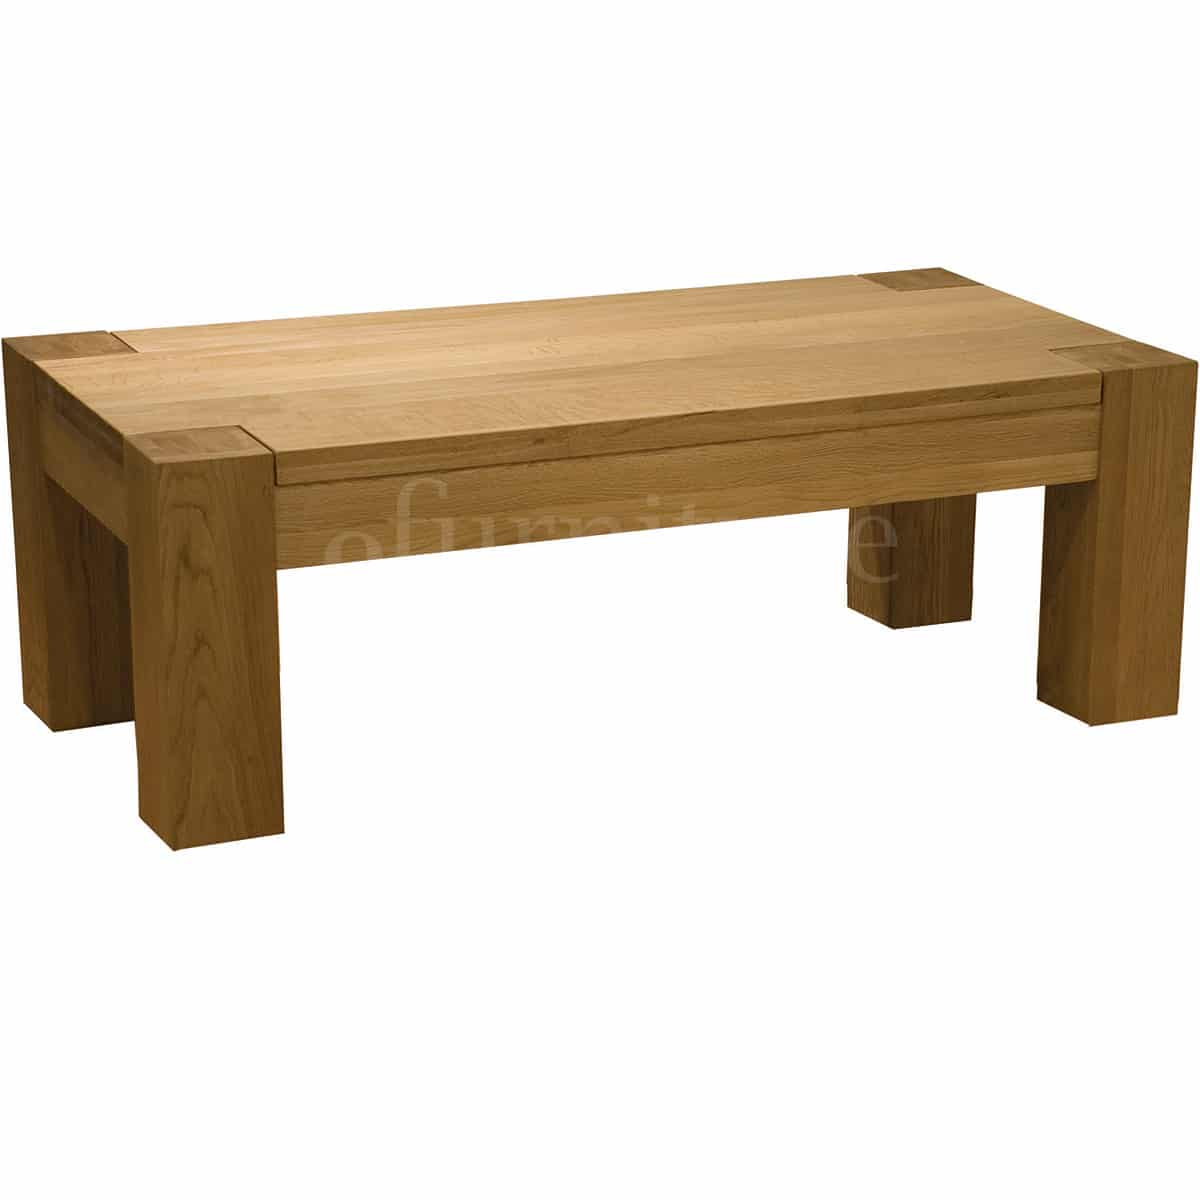 Toulouse 4x2 coffee table limited stocks furniture for Table x reviews